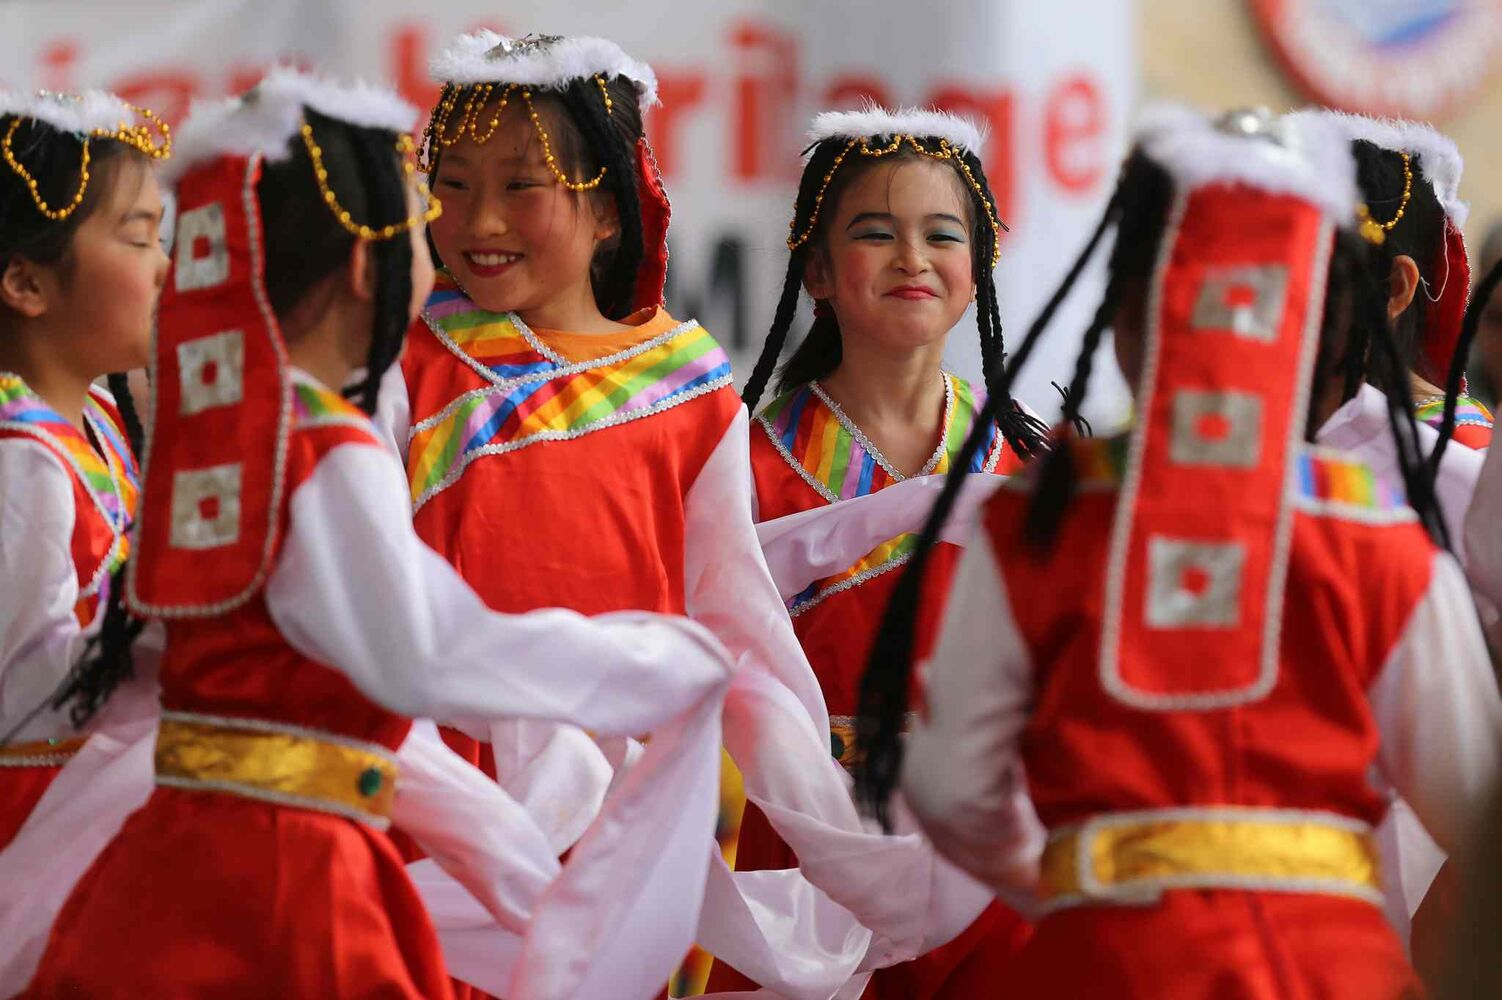 Members of the Great Wall Performing Arts school perform during Asian Heritage Month celebrations at The Forks, Sunday.